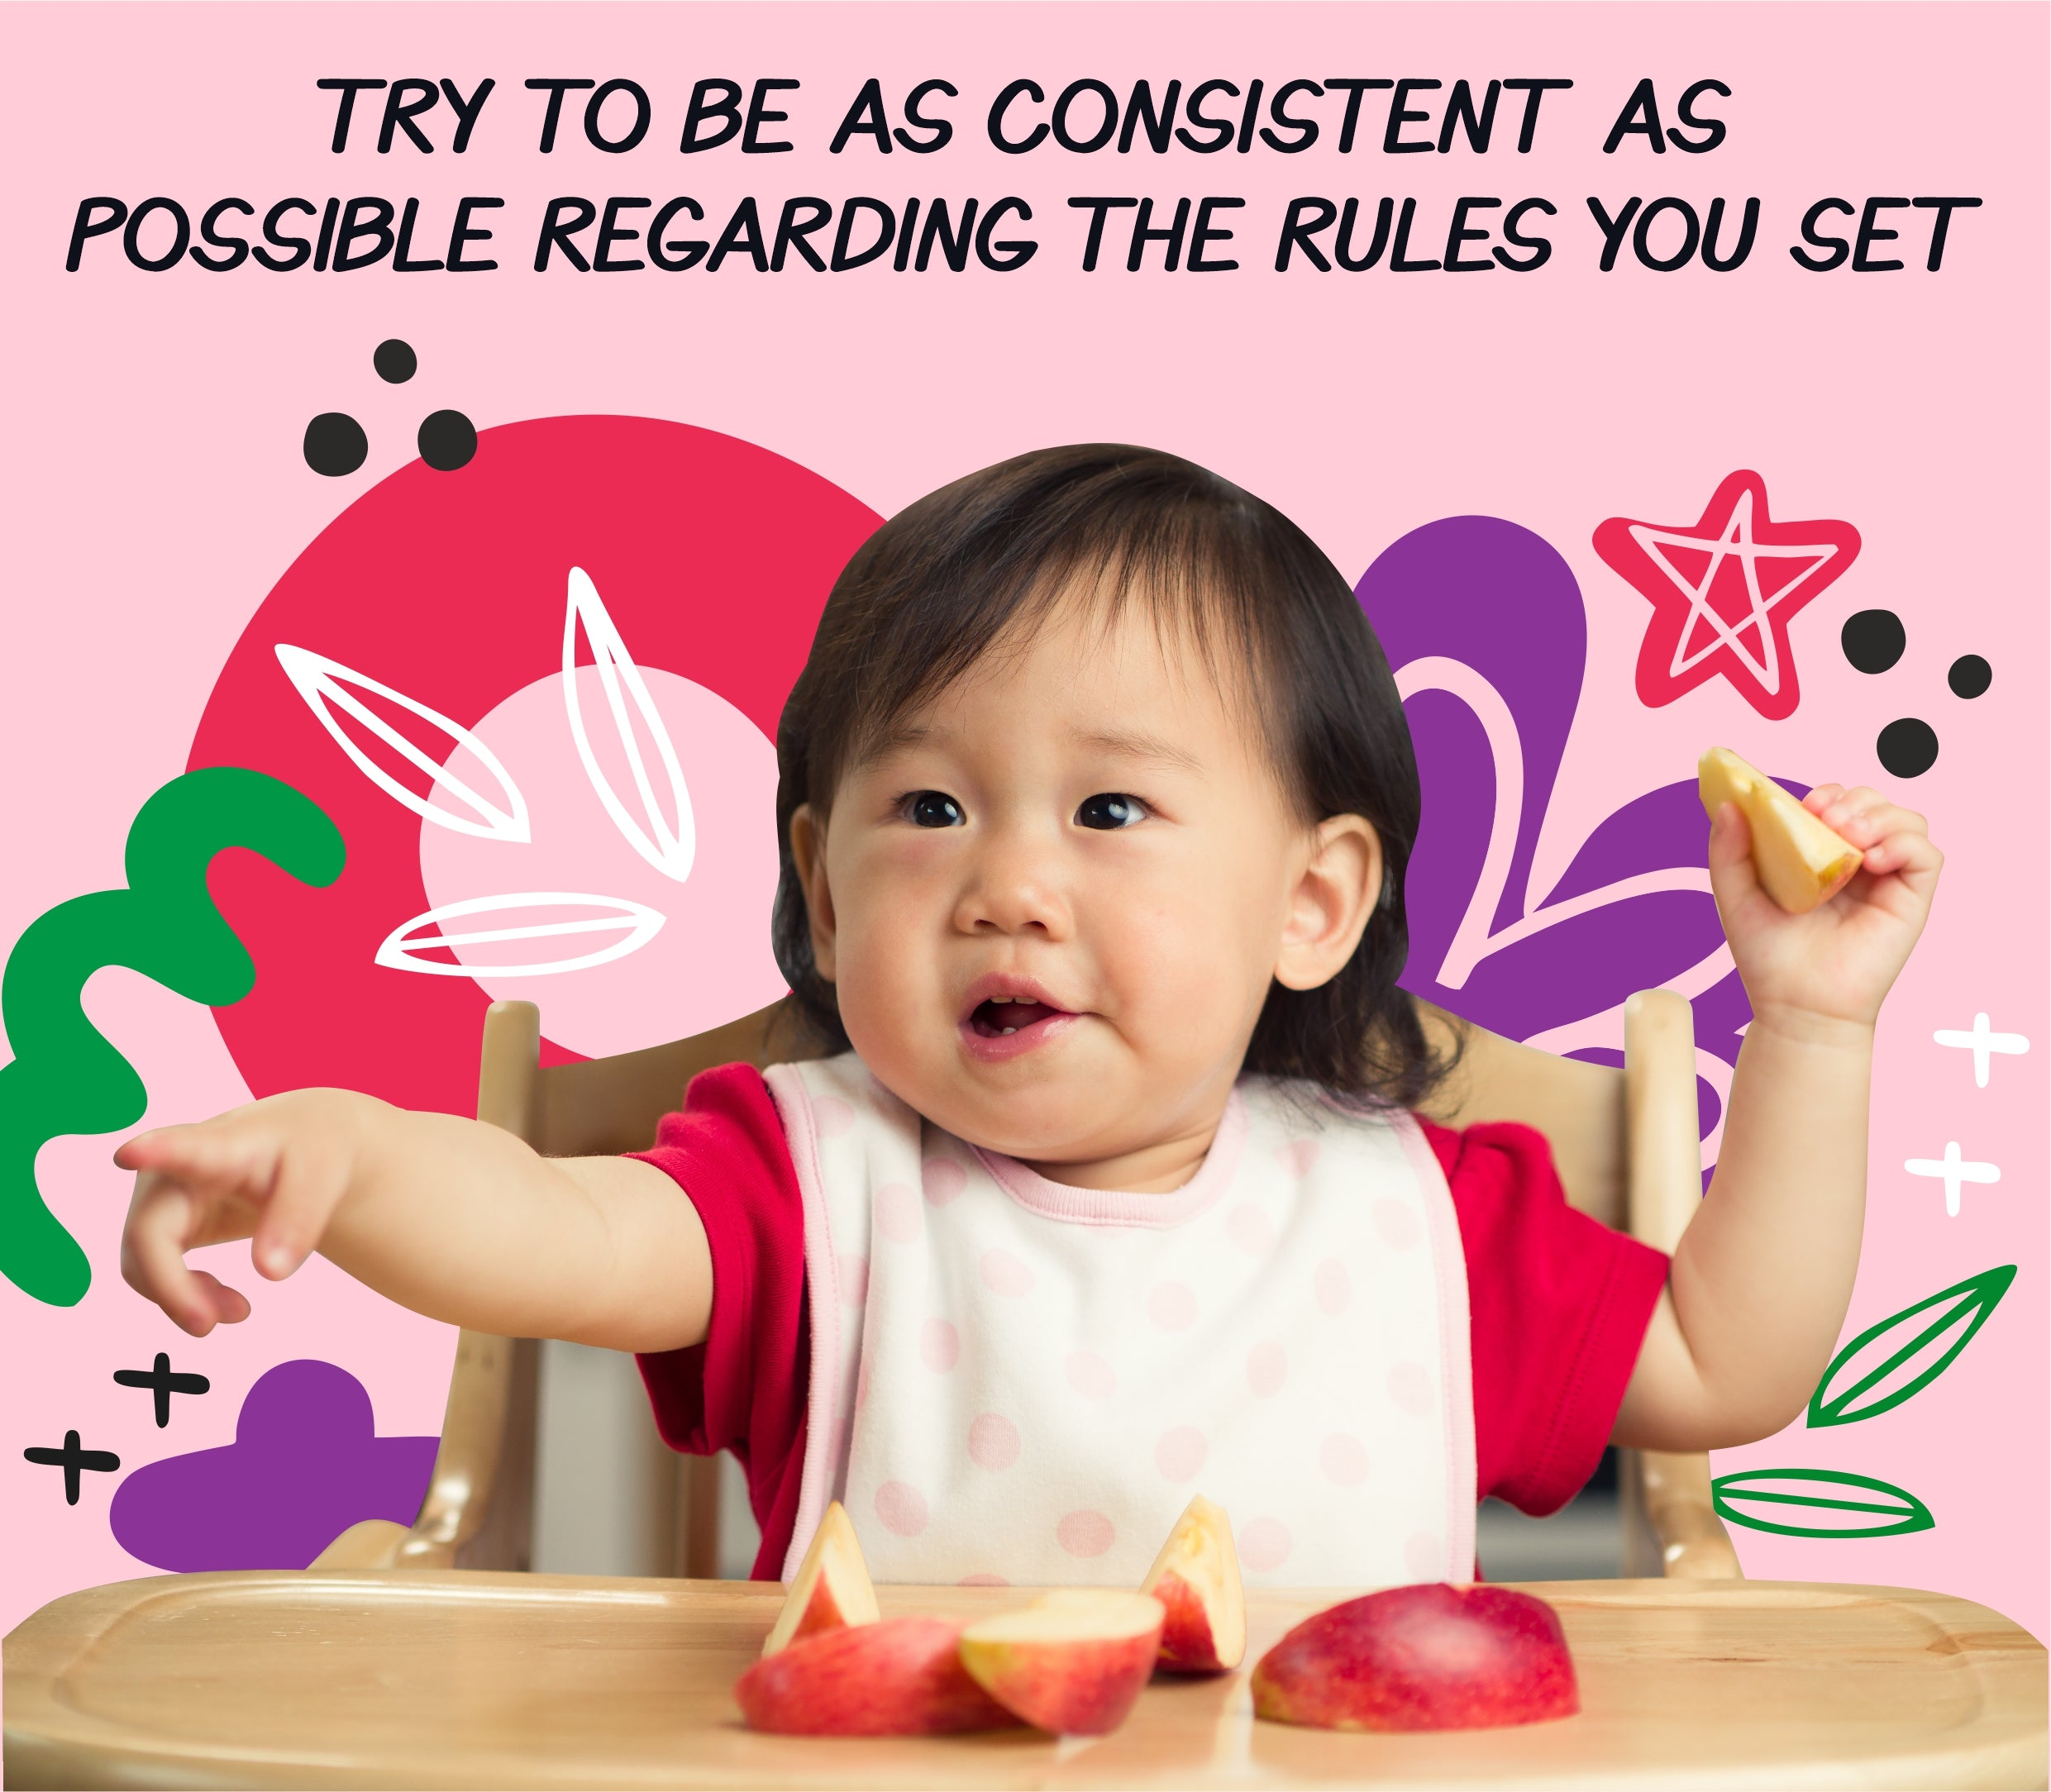 Try to be as consistent as possible regarding the rules you set